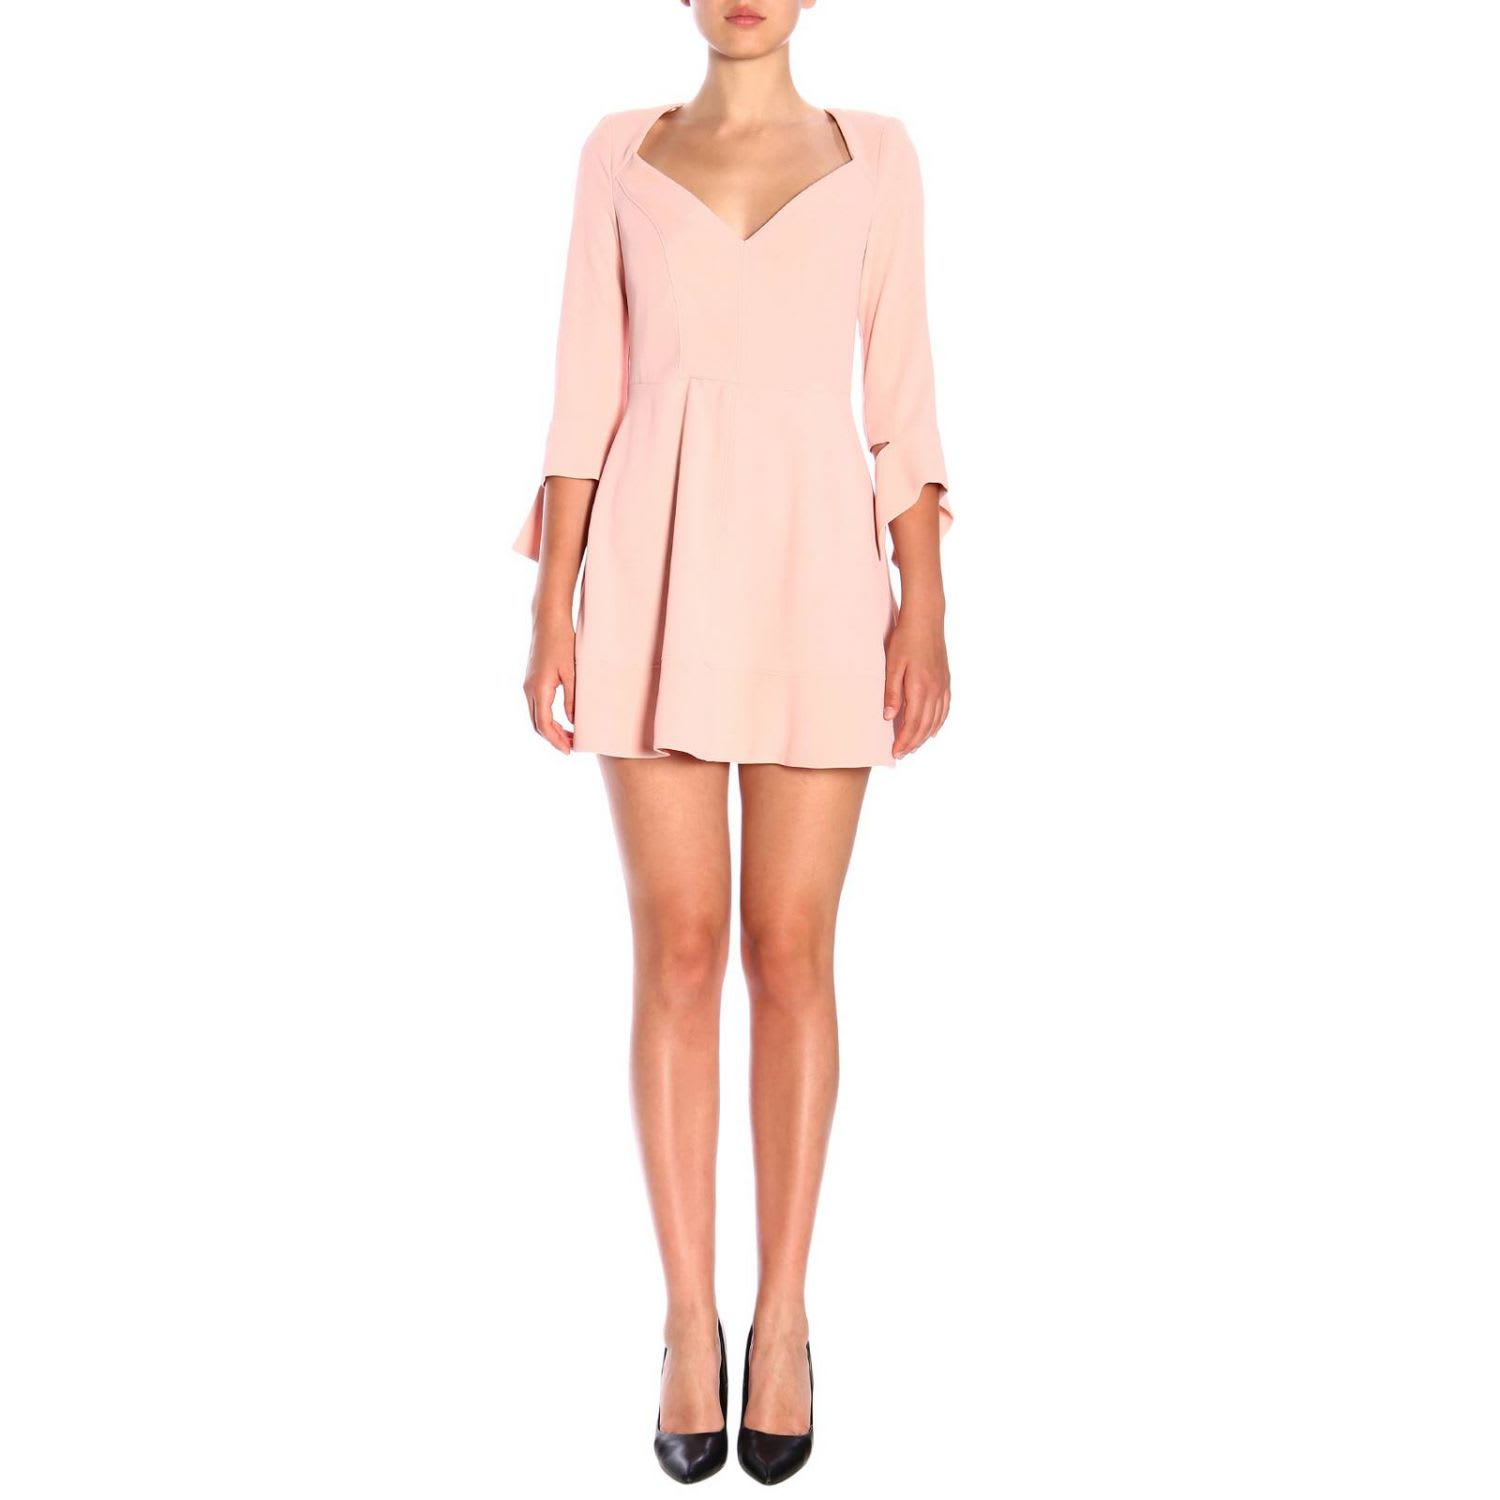 Elisabetta Franchi Dress Elisabetta Franchi Dress With Petal Skirt